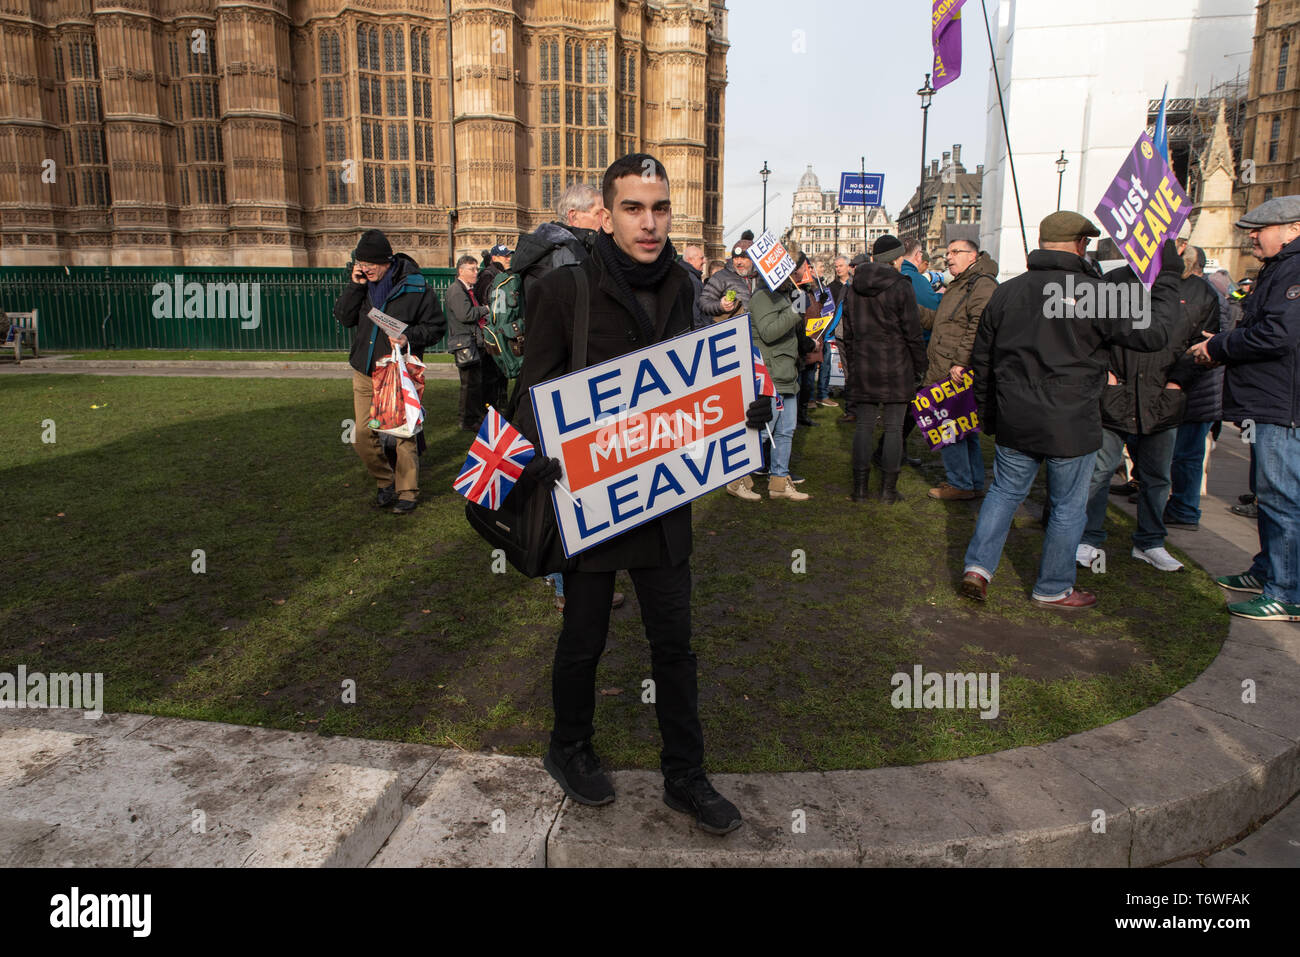 Vote Leave supporters in Westminster before an important vote in Parliament, London, Great Britain. 29th January 2019. - Stock Image